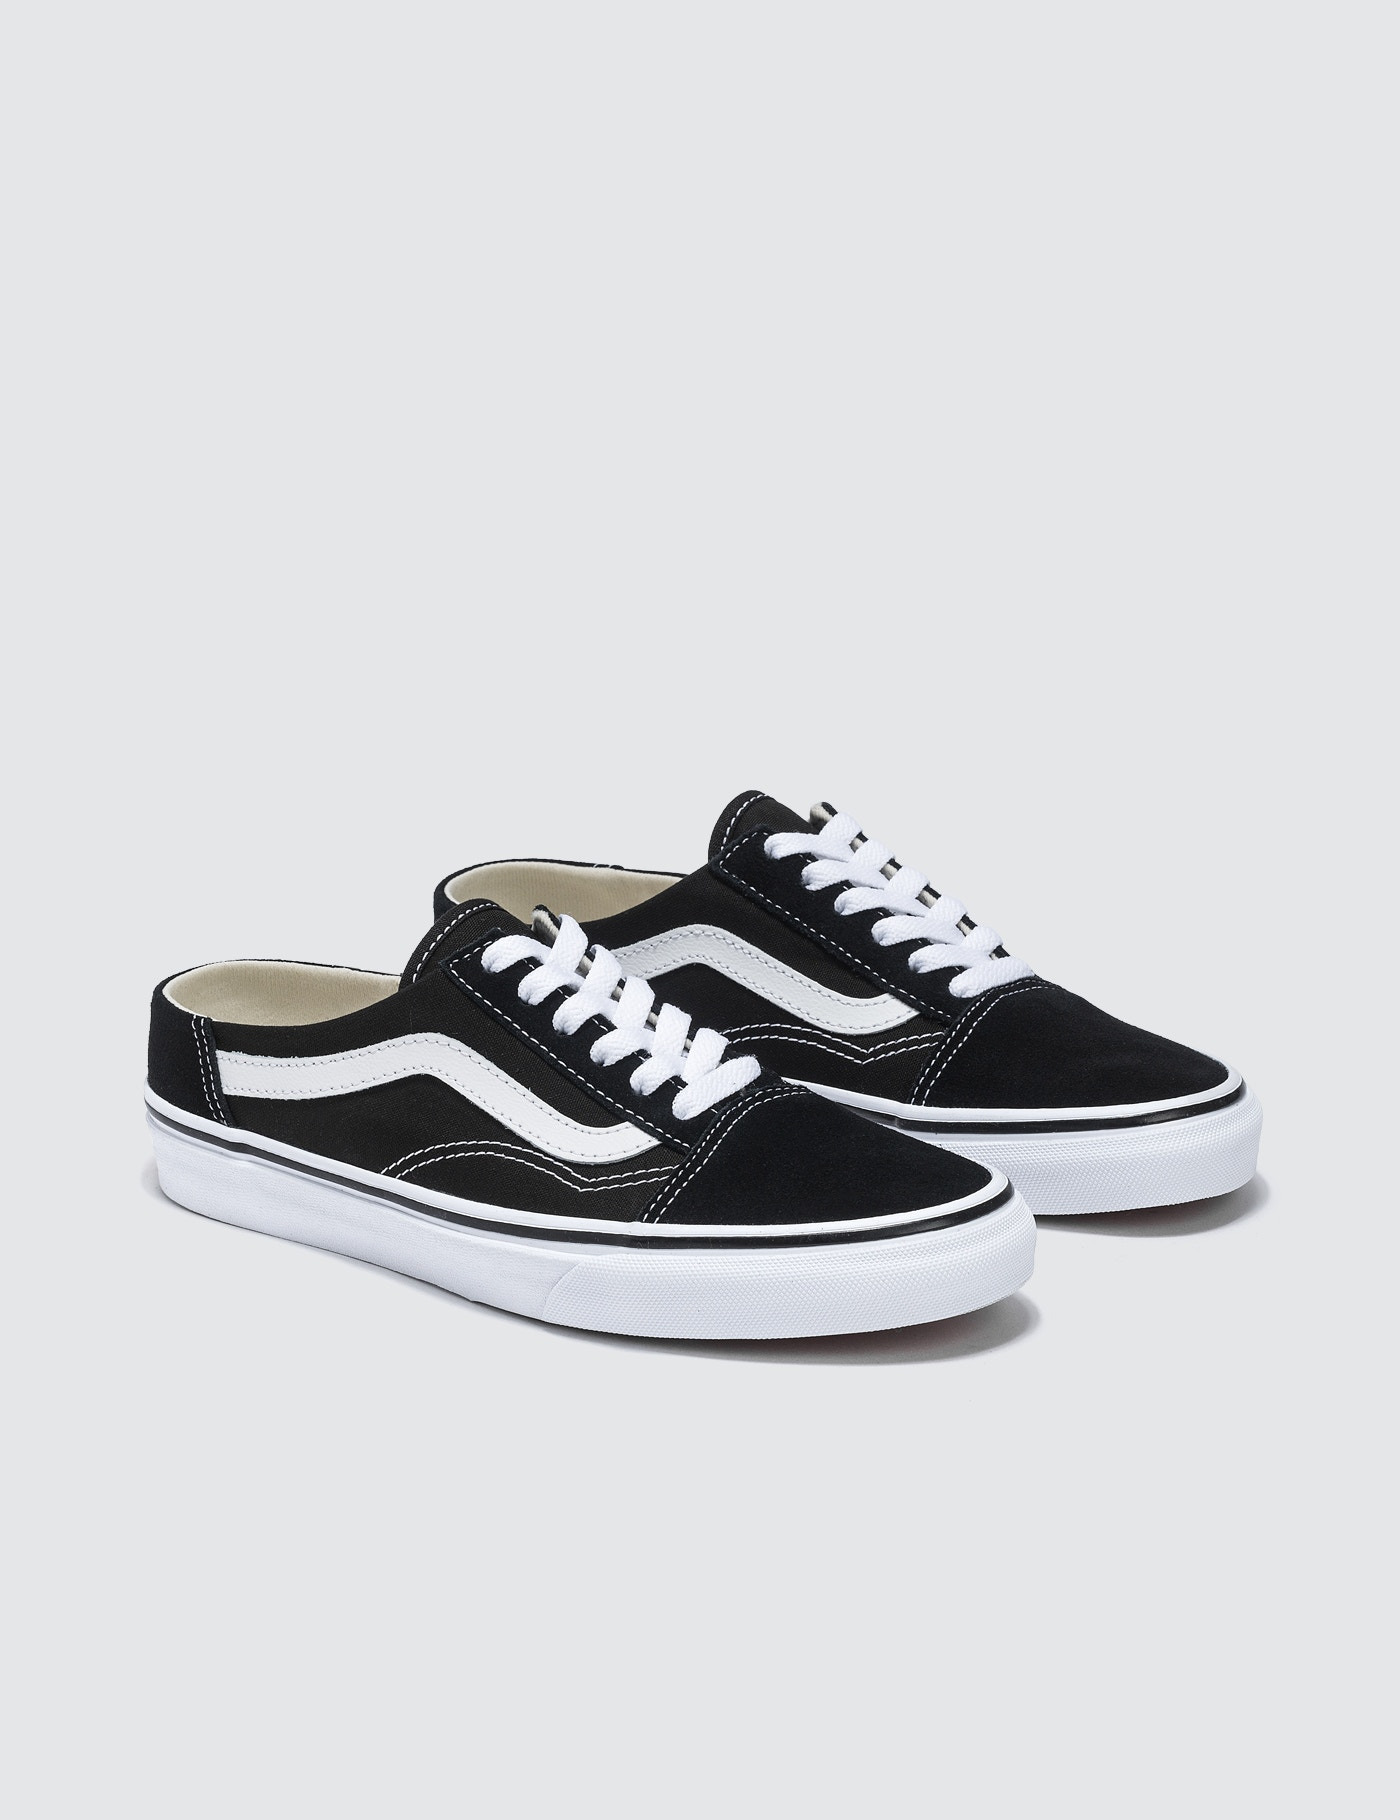 f6490cc480 Buy Original Vans Old Skool Mule at Indonesia